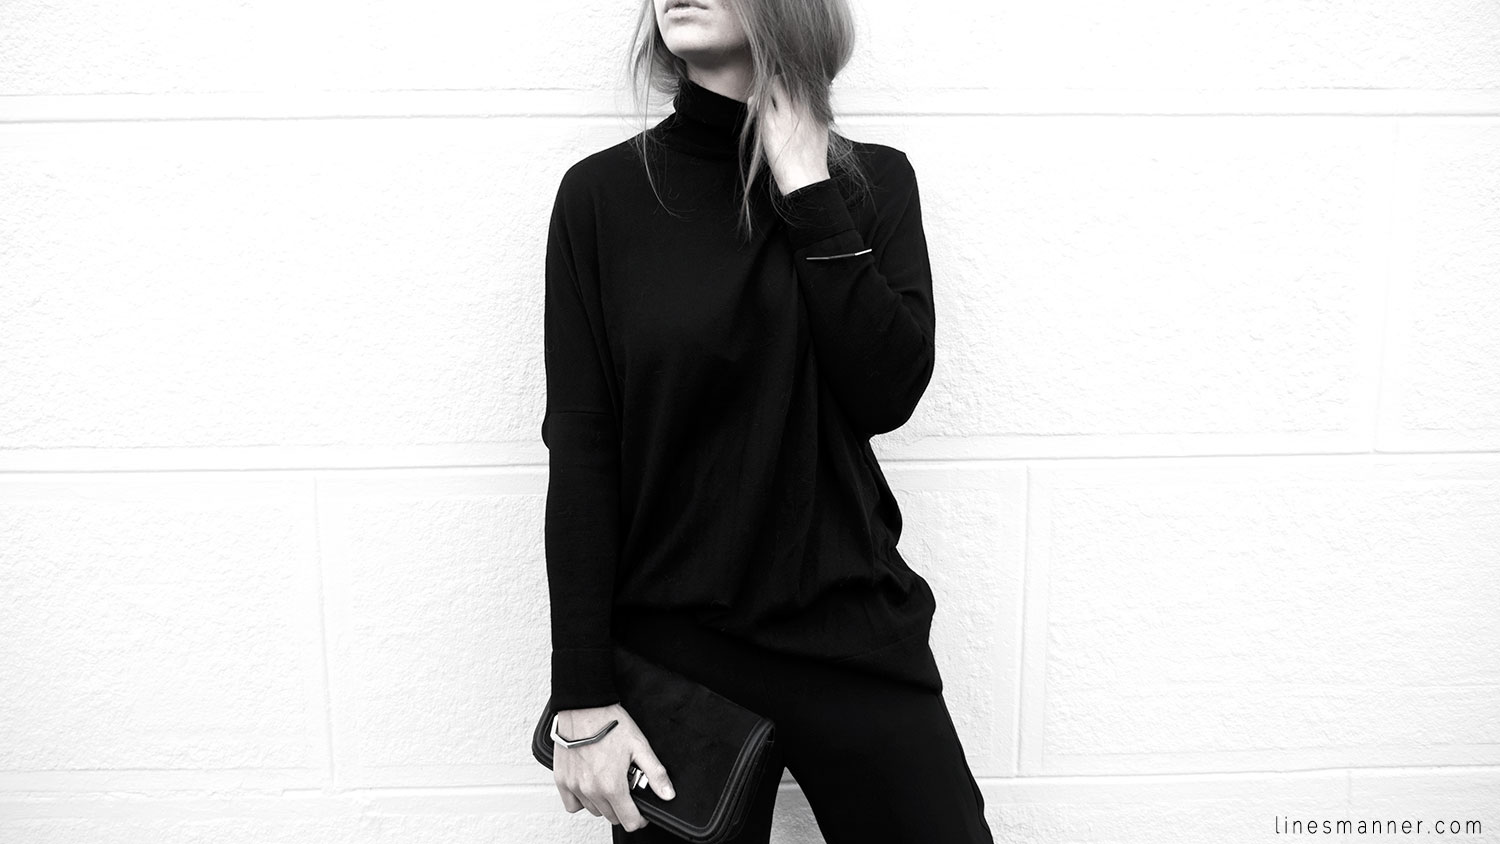 Lines-Manner-Minimalism-Details-Black-All_black_everything-Simplicity-Timeless-Modern-Monochrome-Essential-Basics-Staples_pieces-Outfit-Design-Effortless-9